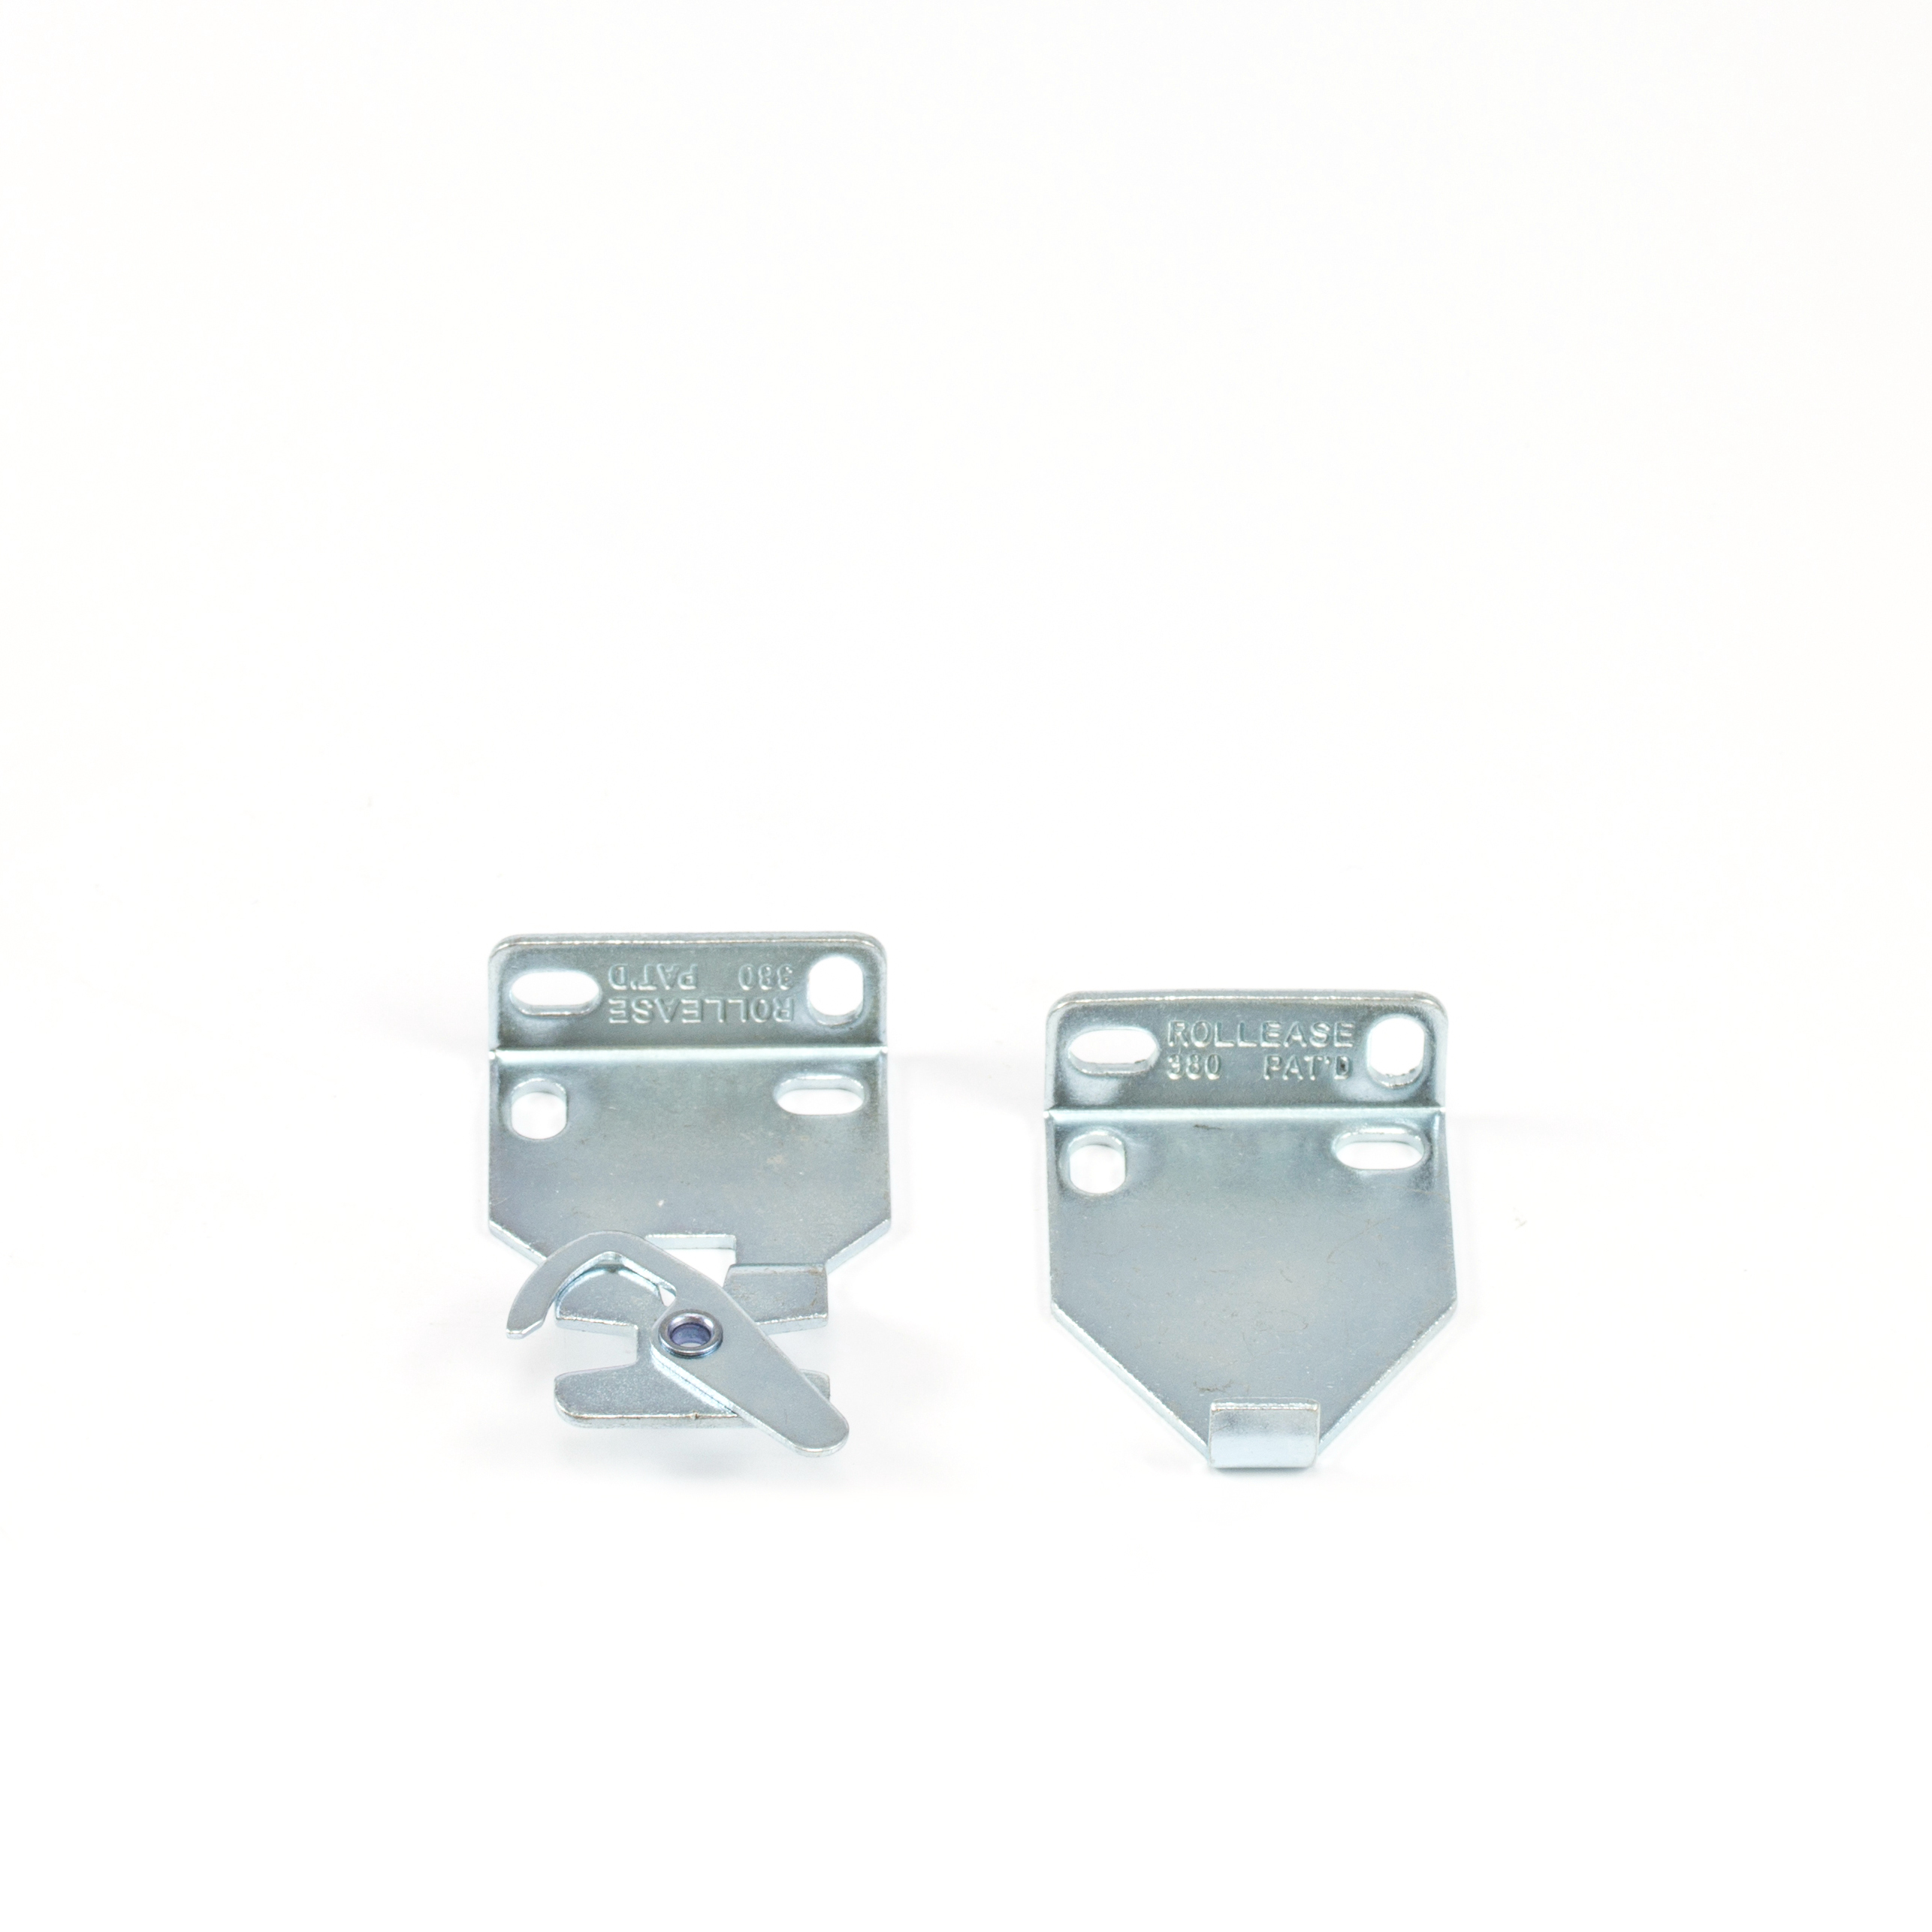 RollEase Mounting Bracket for R-3/ R-8 Clutch 2